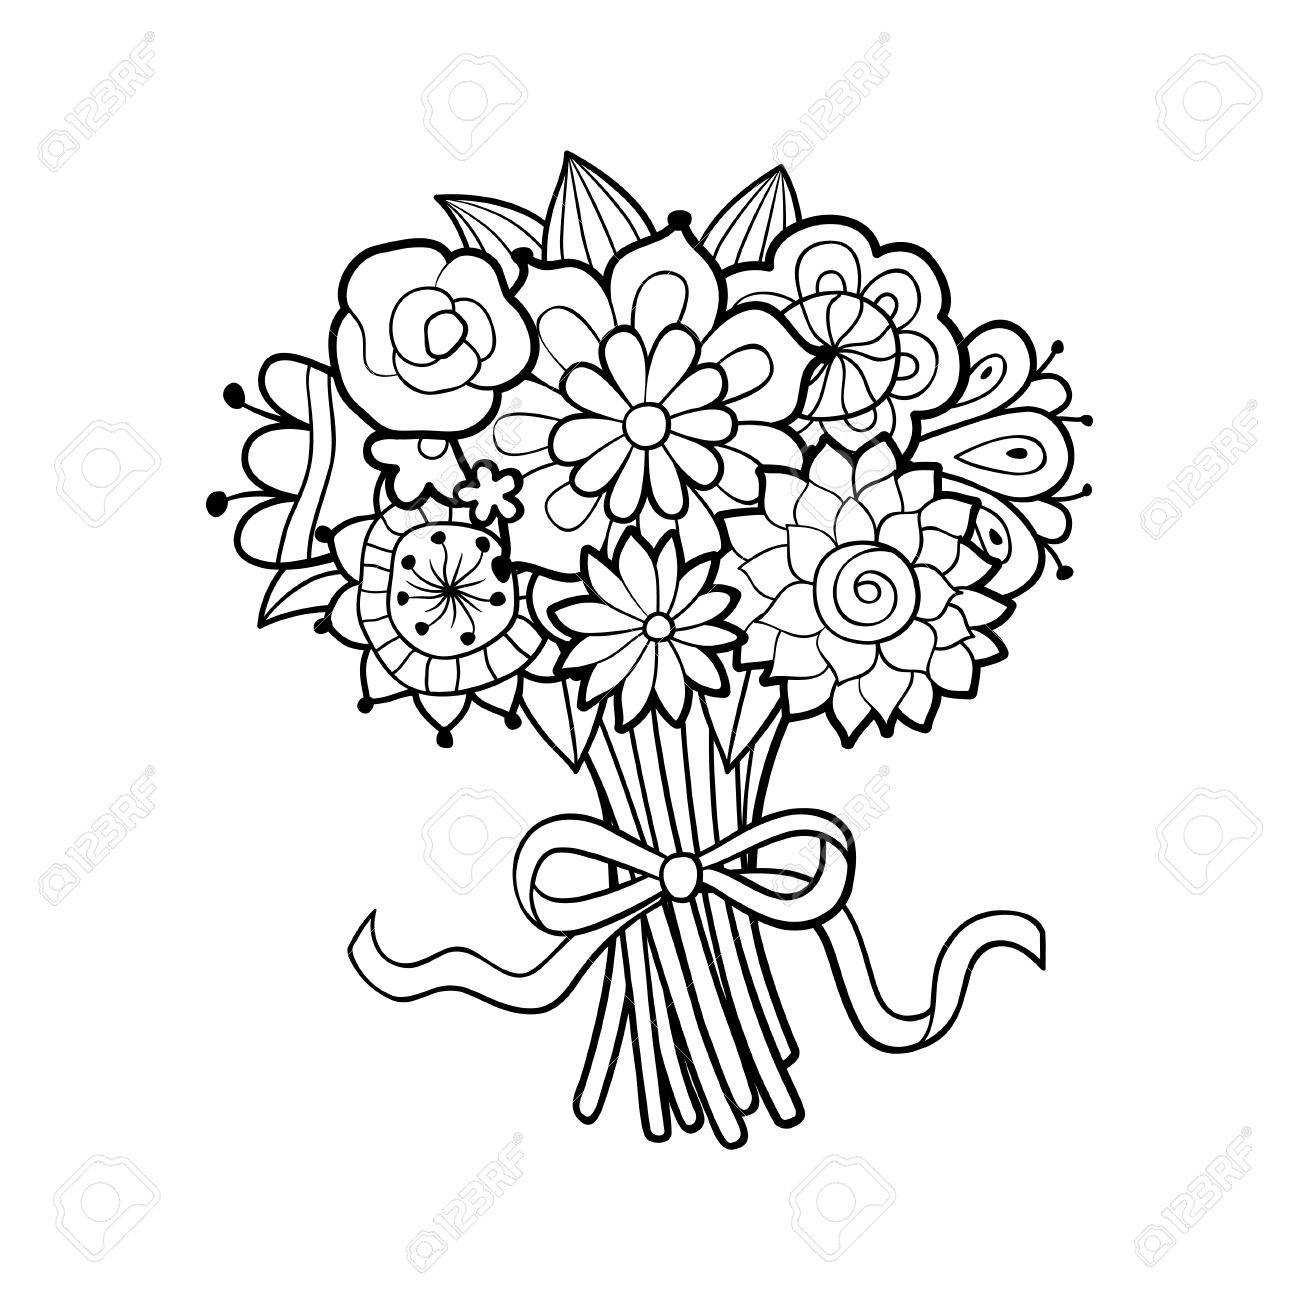 Bouquet clipart black and white 7 » Clipart Station.